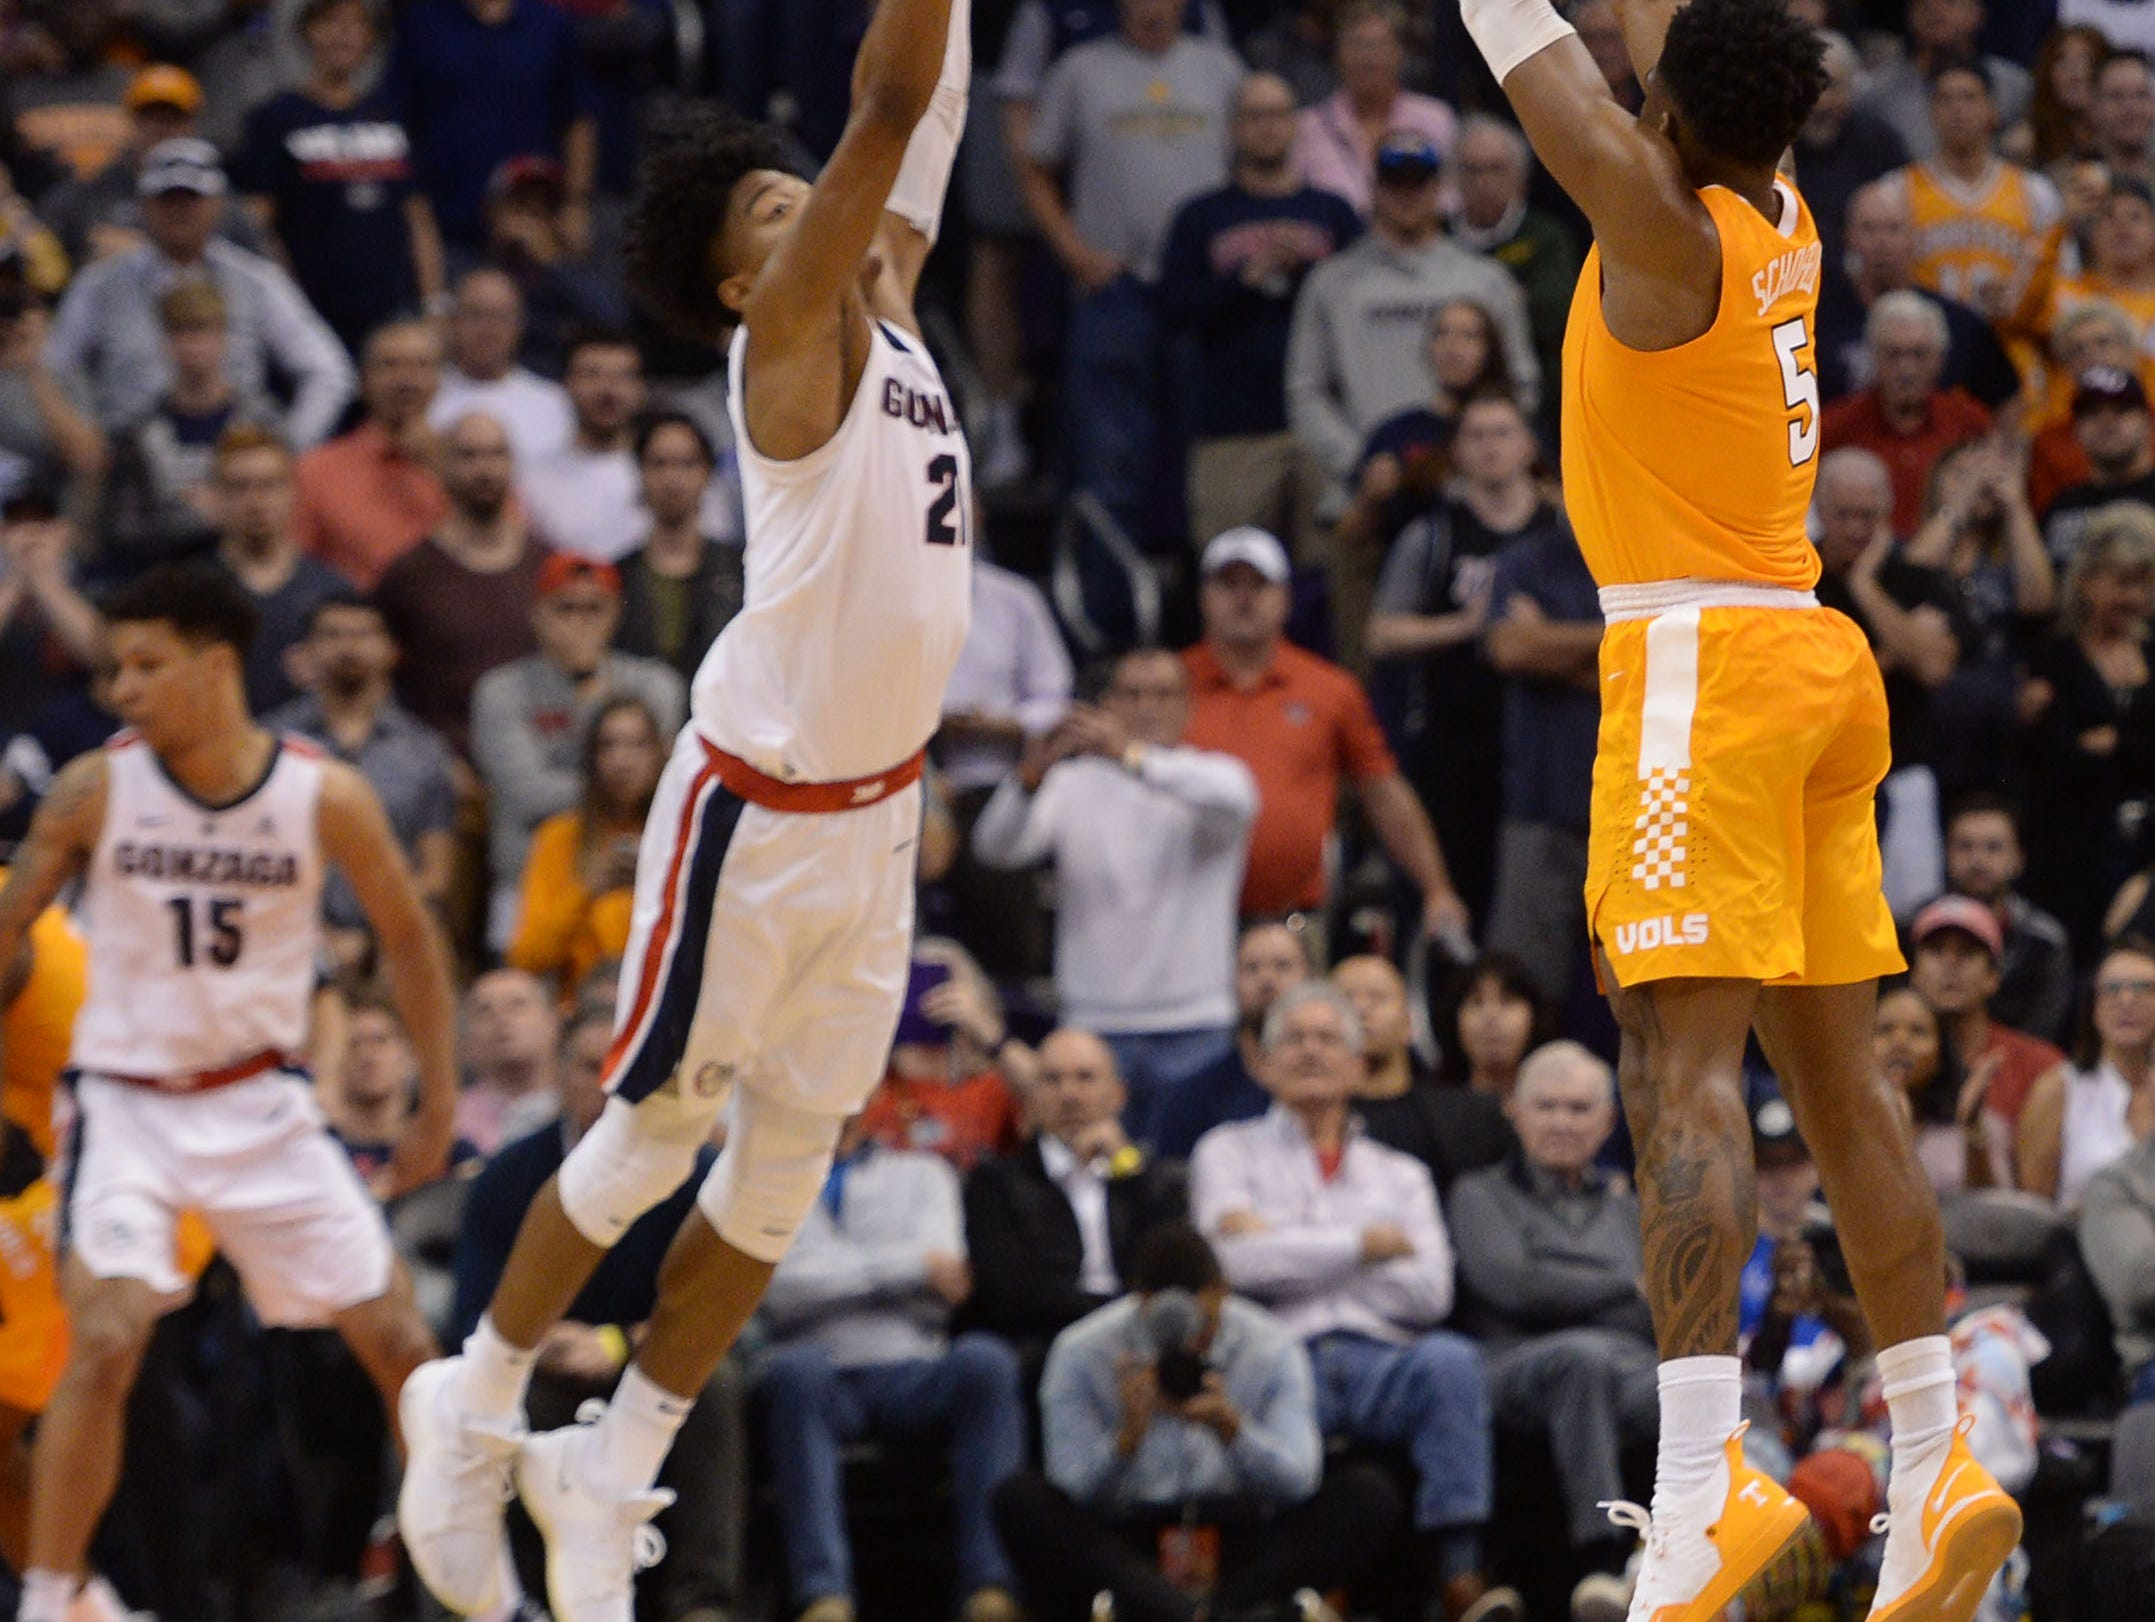 Dec 9, 2018; Phoenix, AZ, USA; Tennessee Volunteers guard Admiral Schofield (5) shoots the go-ahead three point basket against the Gonzaga Bulldogs during the second half at Talking Stick Resort Arena.